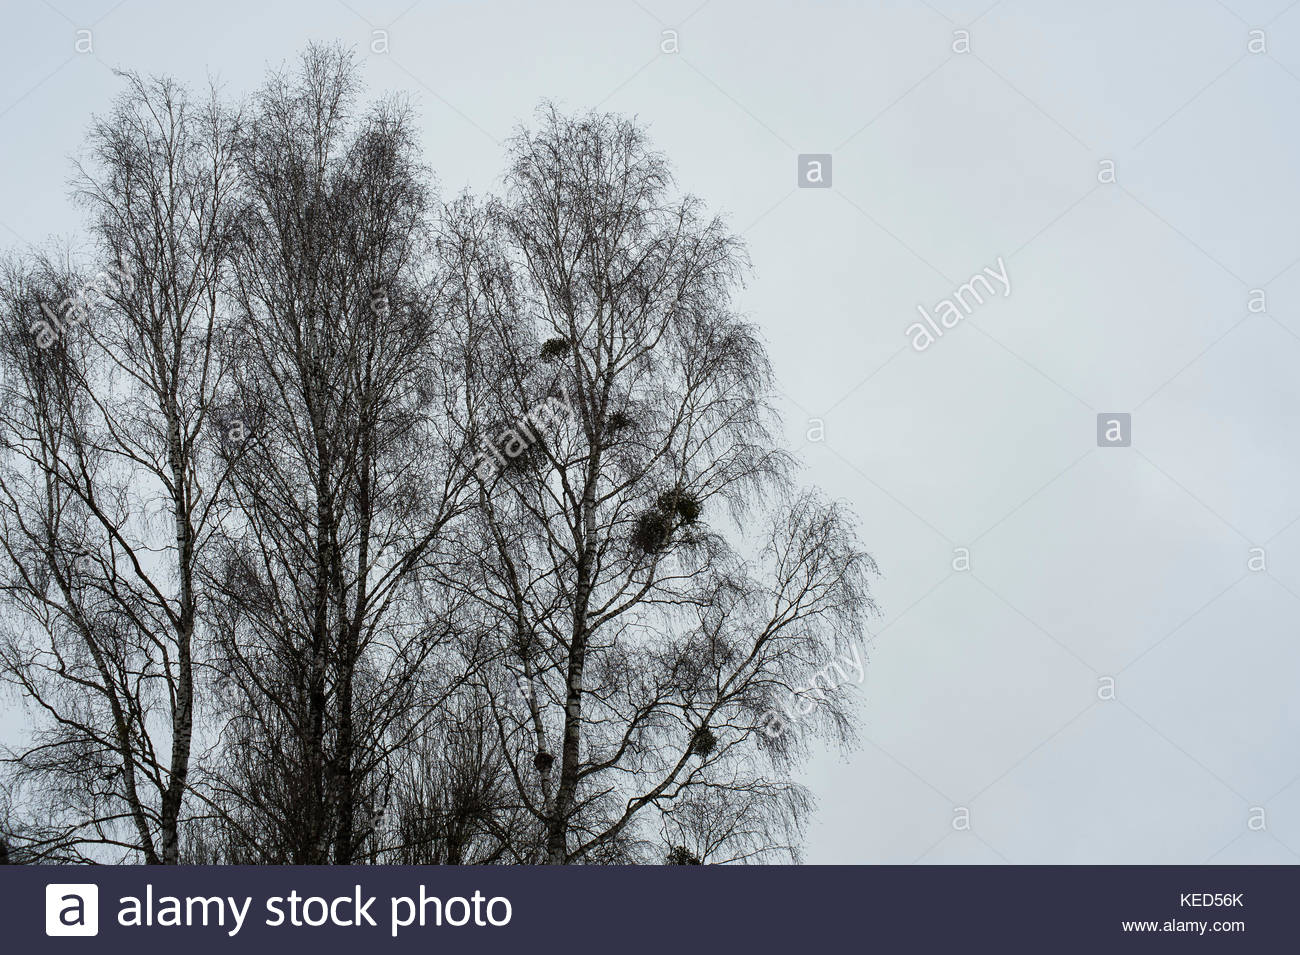 Mistletoe pattern stock photos mistletoe pattern stock images tops of bare wintry silver birch trees with bunches of mistletoe a symbol of buycottarizona Image collections